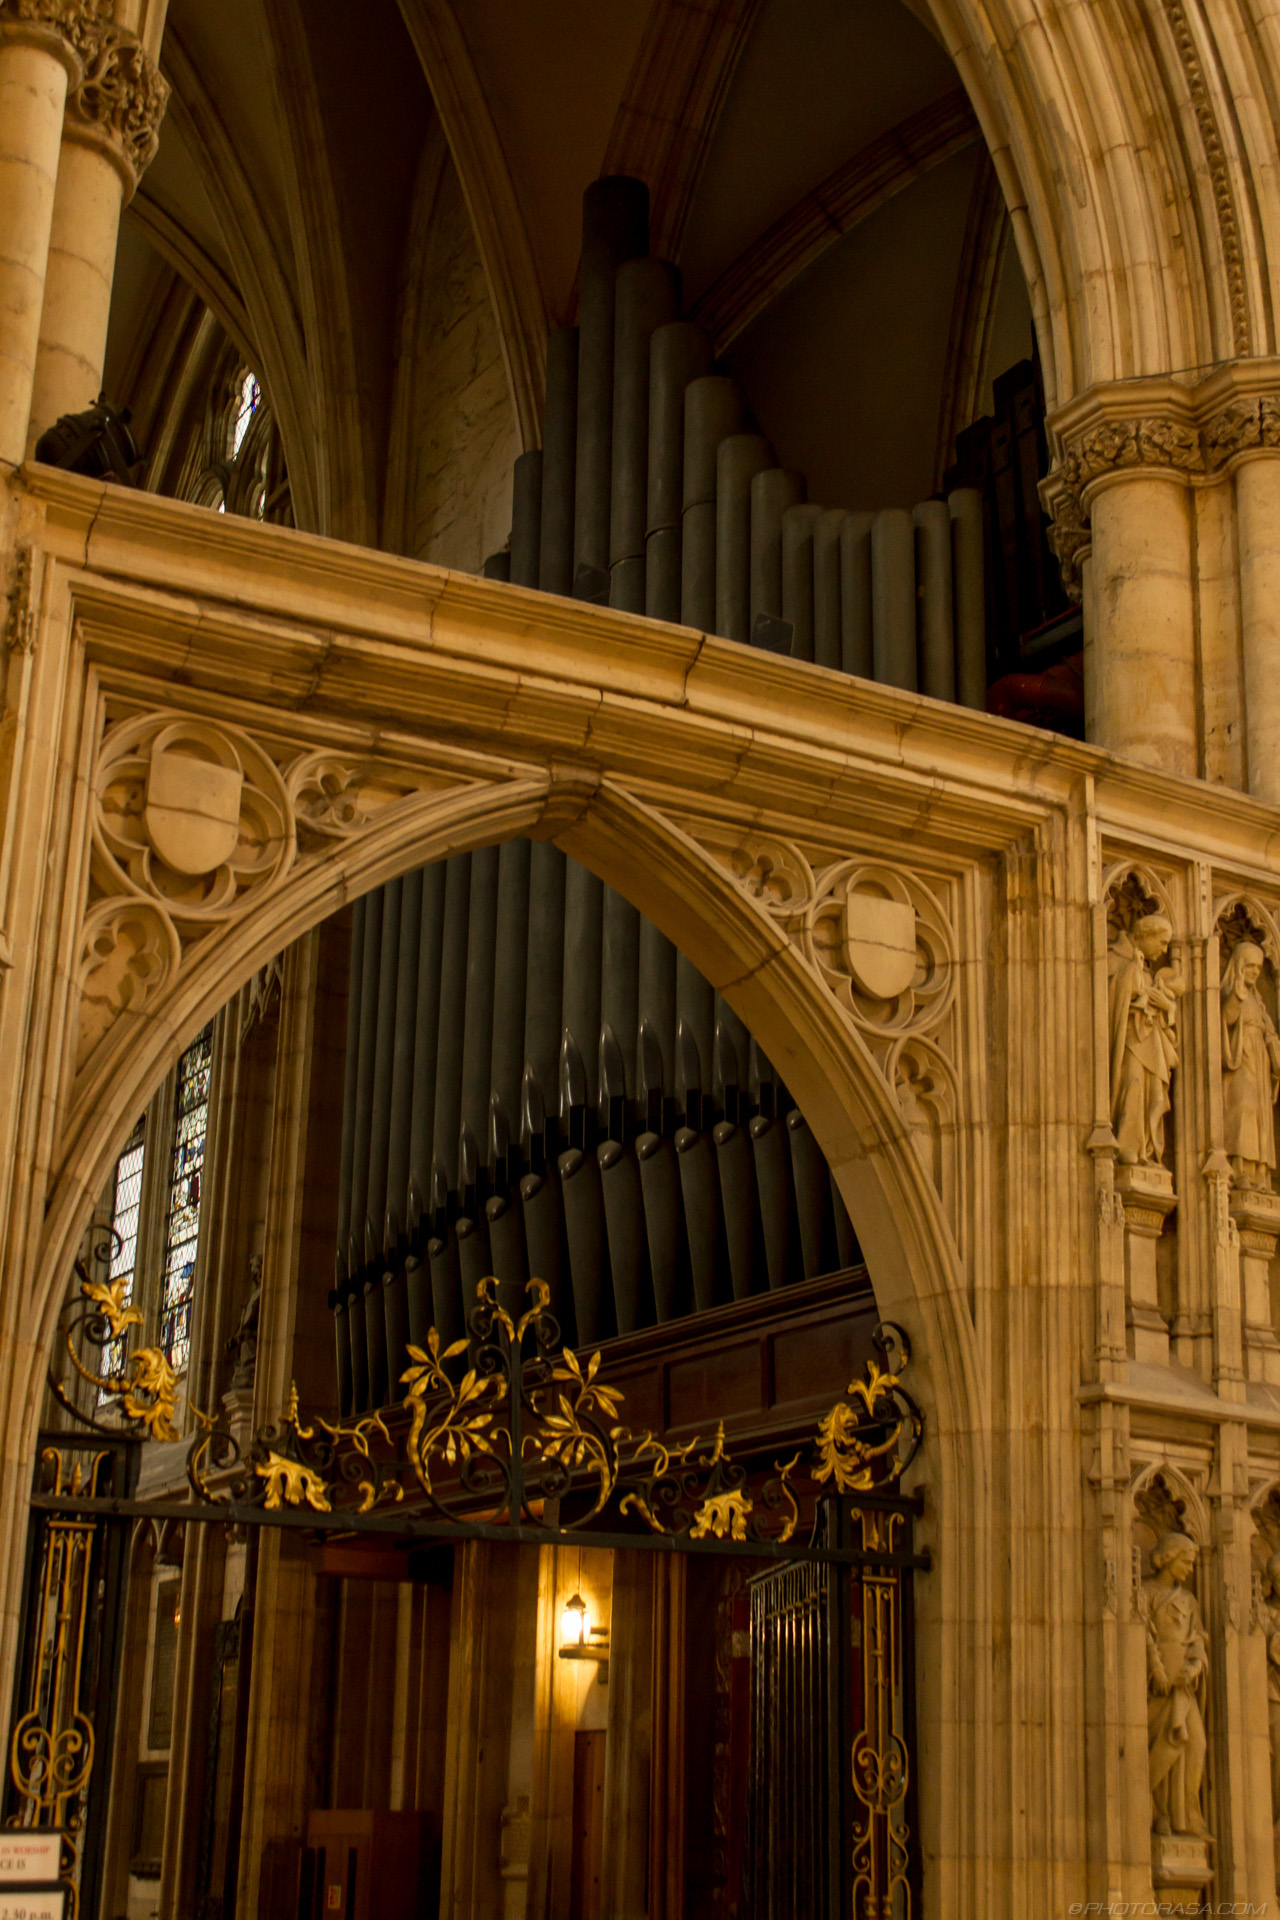 http://photorasa.com/yorkminster-cathedral/stone-archway-in-front-of-organ-pipes/